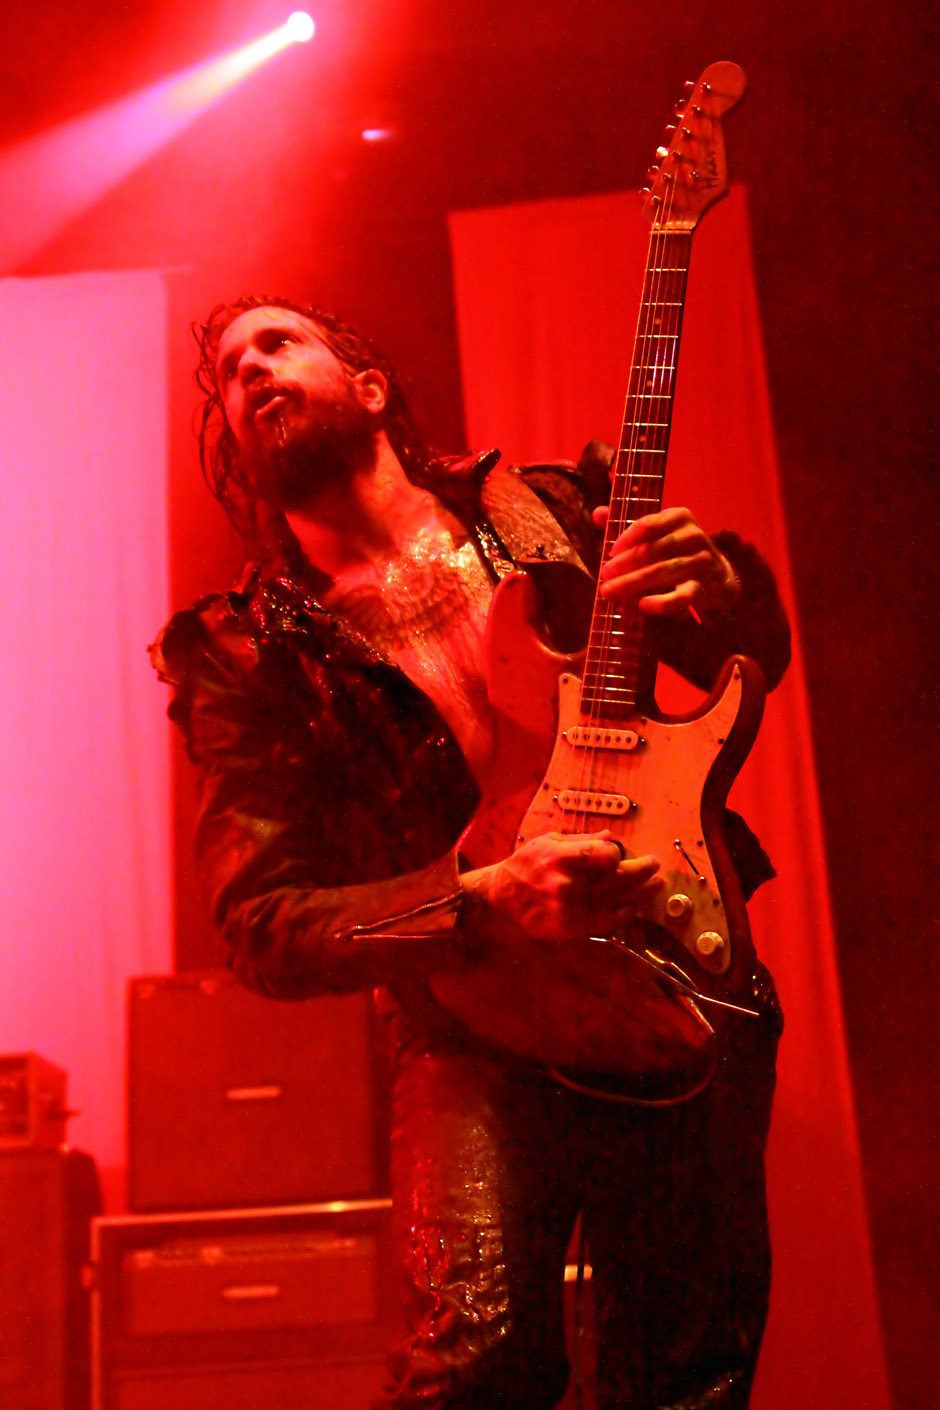 The Devils Blood live, Bang Your Head 2012